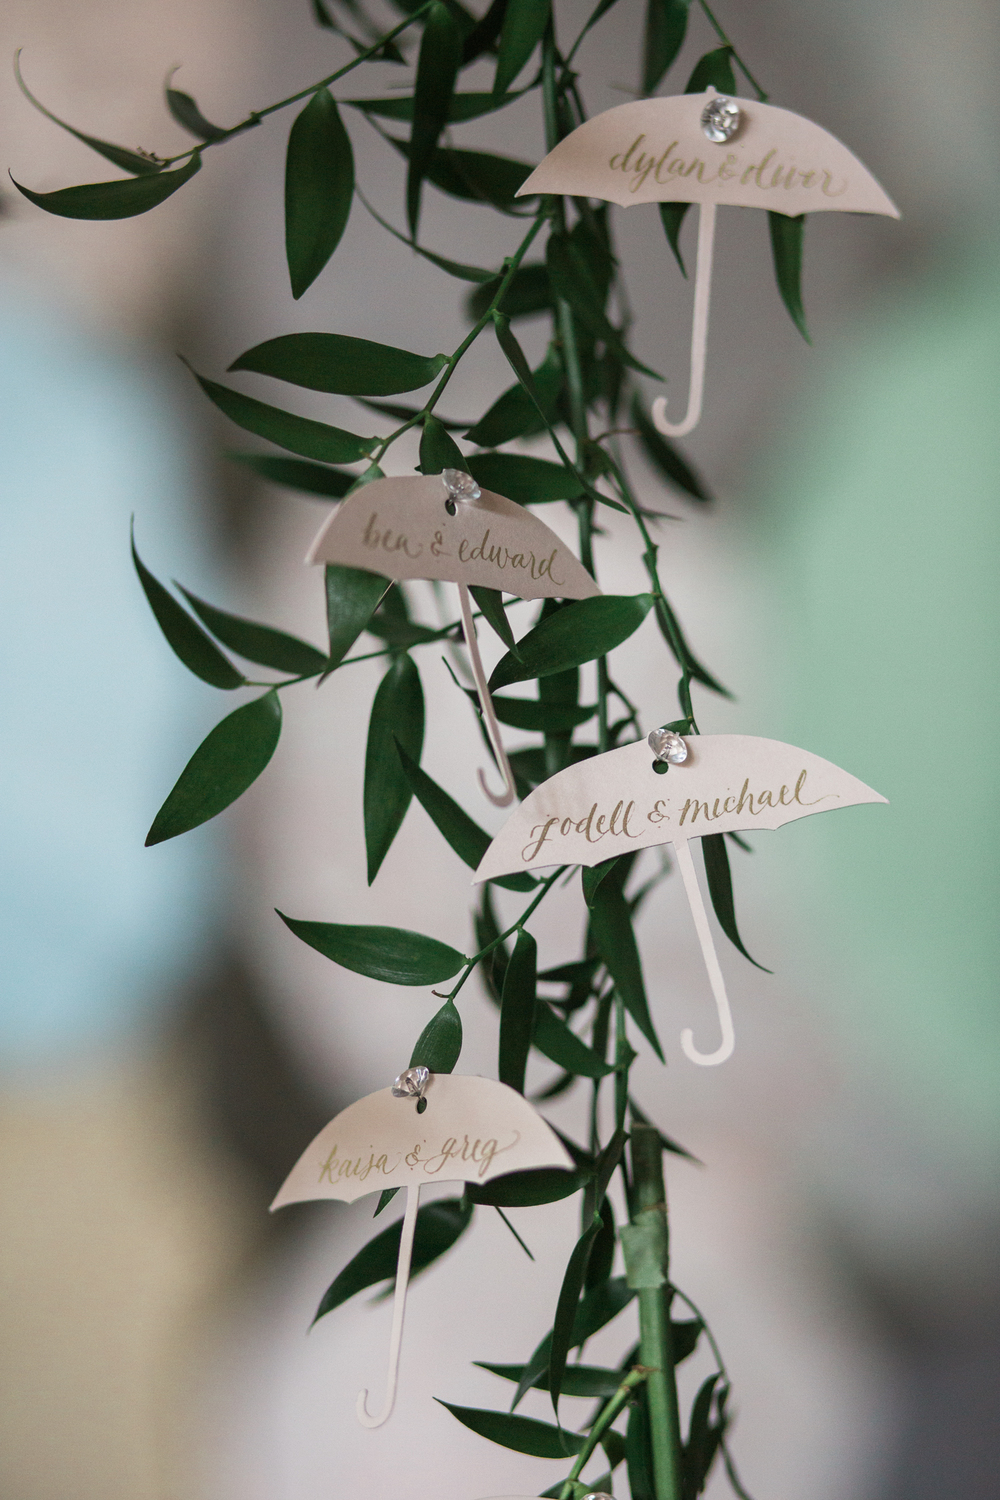 Bella Umbrella | Vintage Umbrella Rentals | Alante Photography | Seattle Wedding Planning